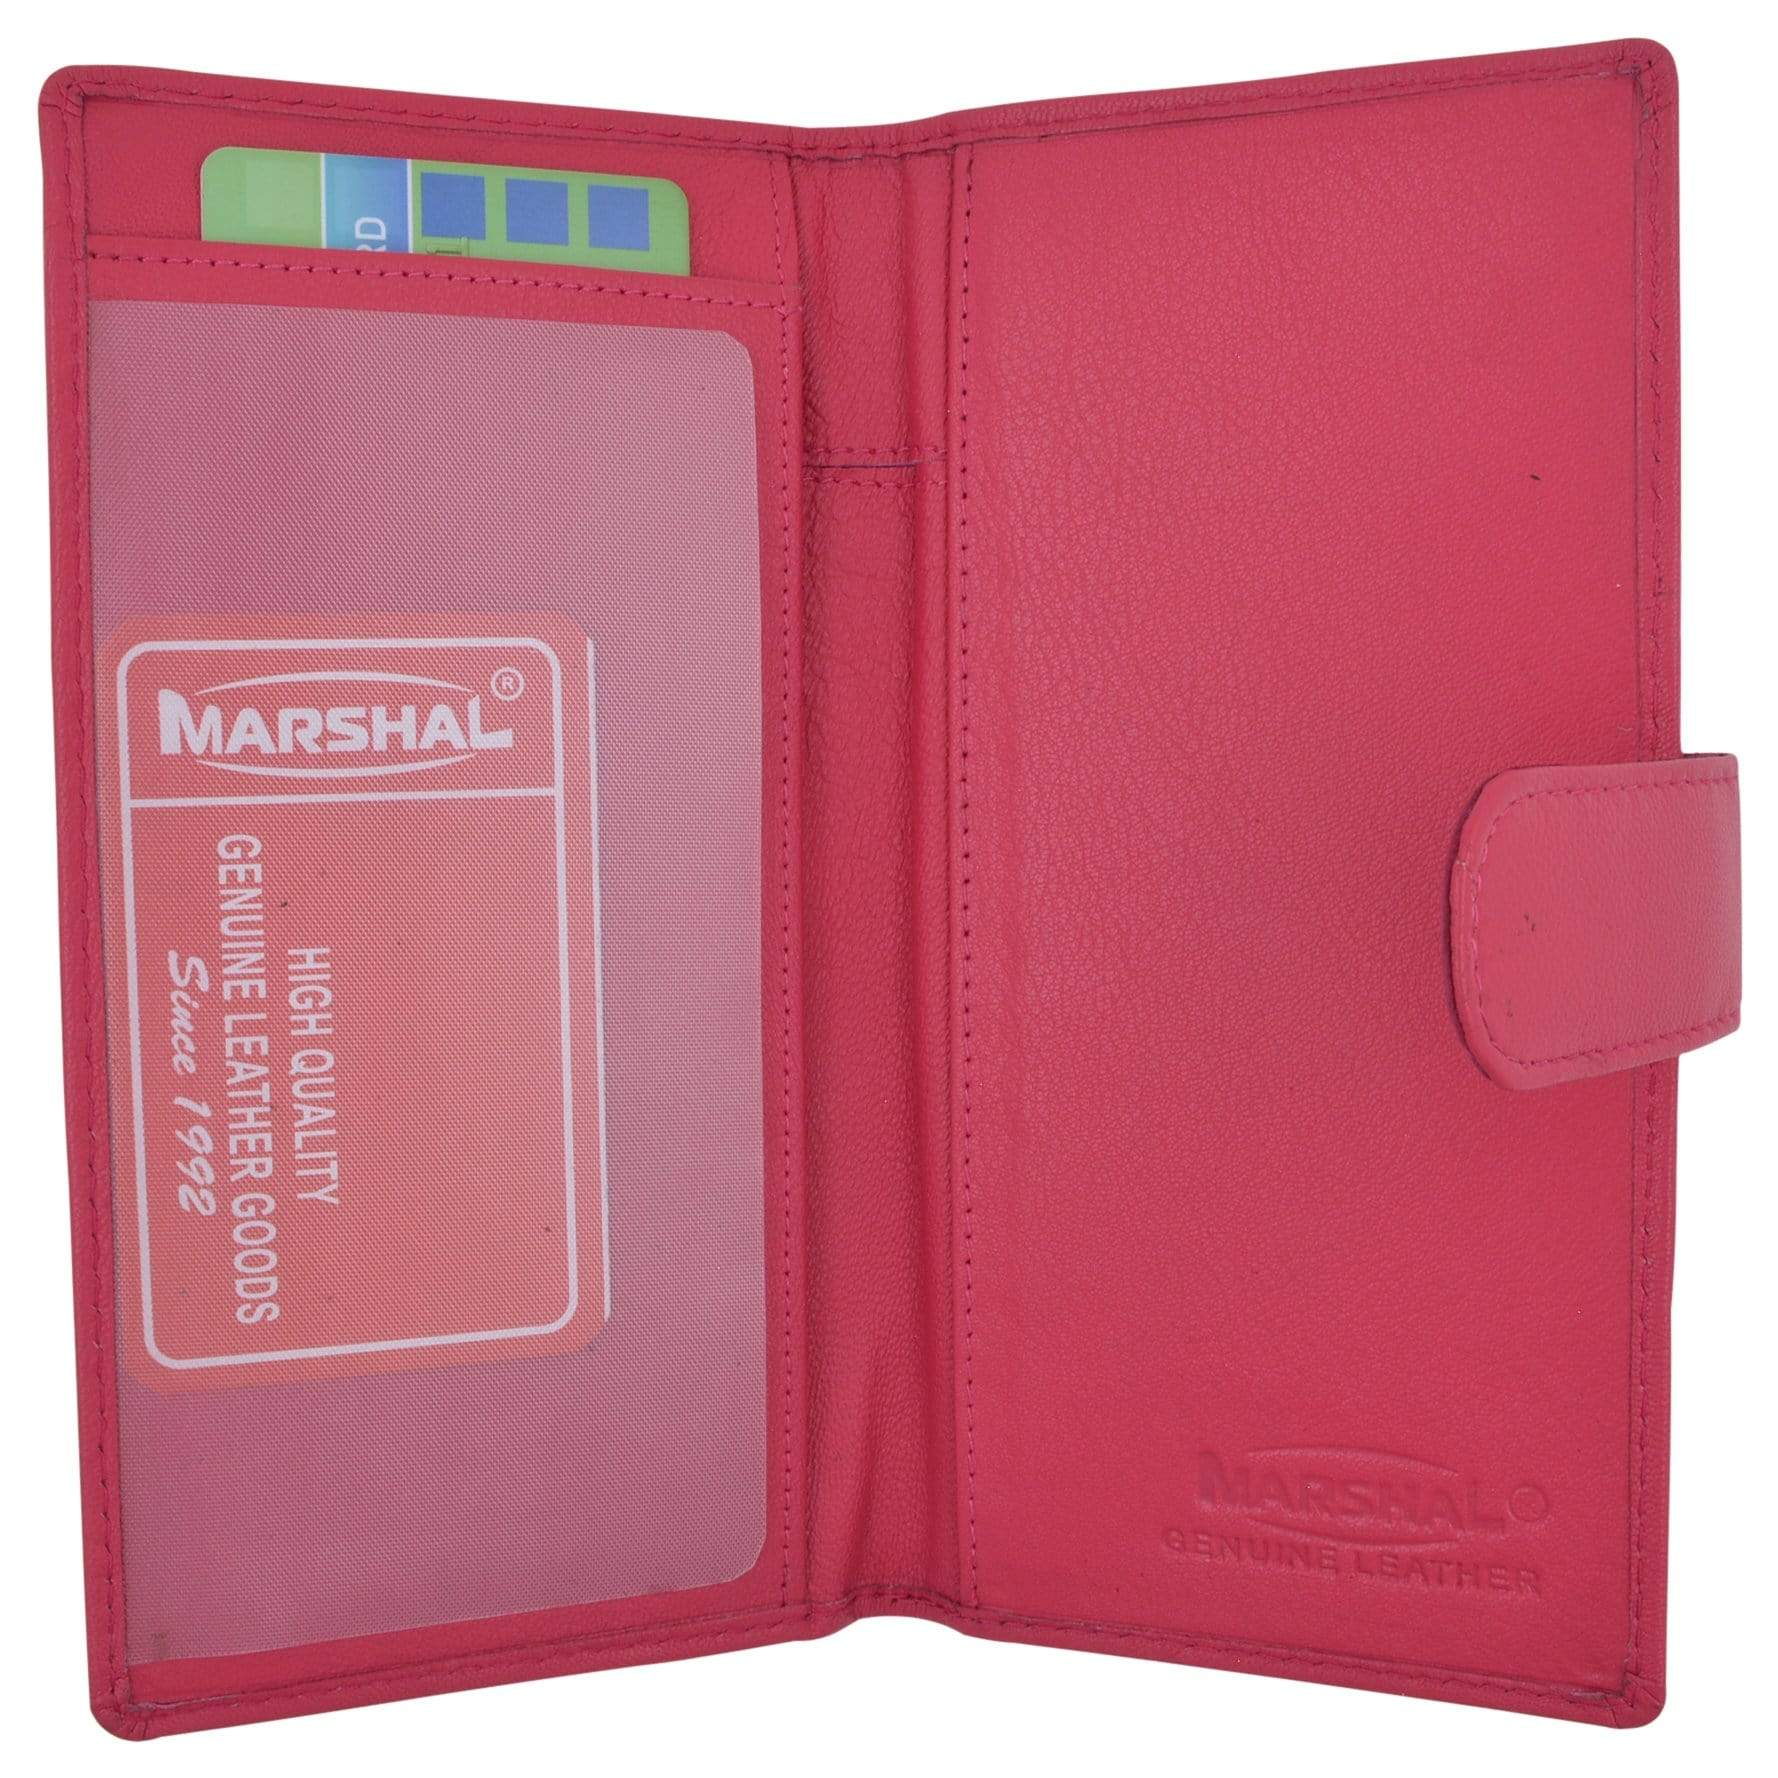 Marshal Genuine Leather New Checkbook Covers Case Wallet